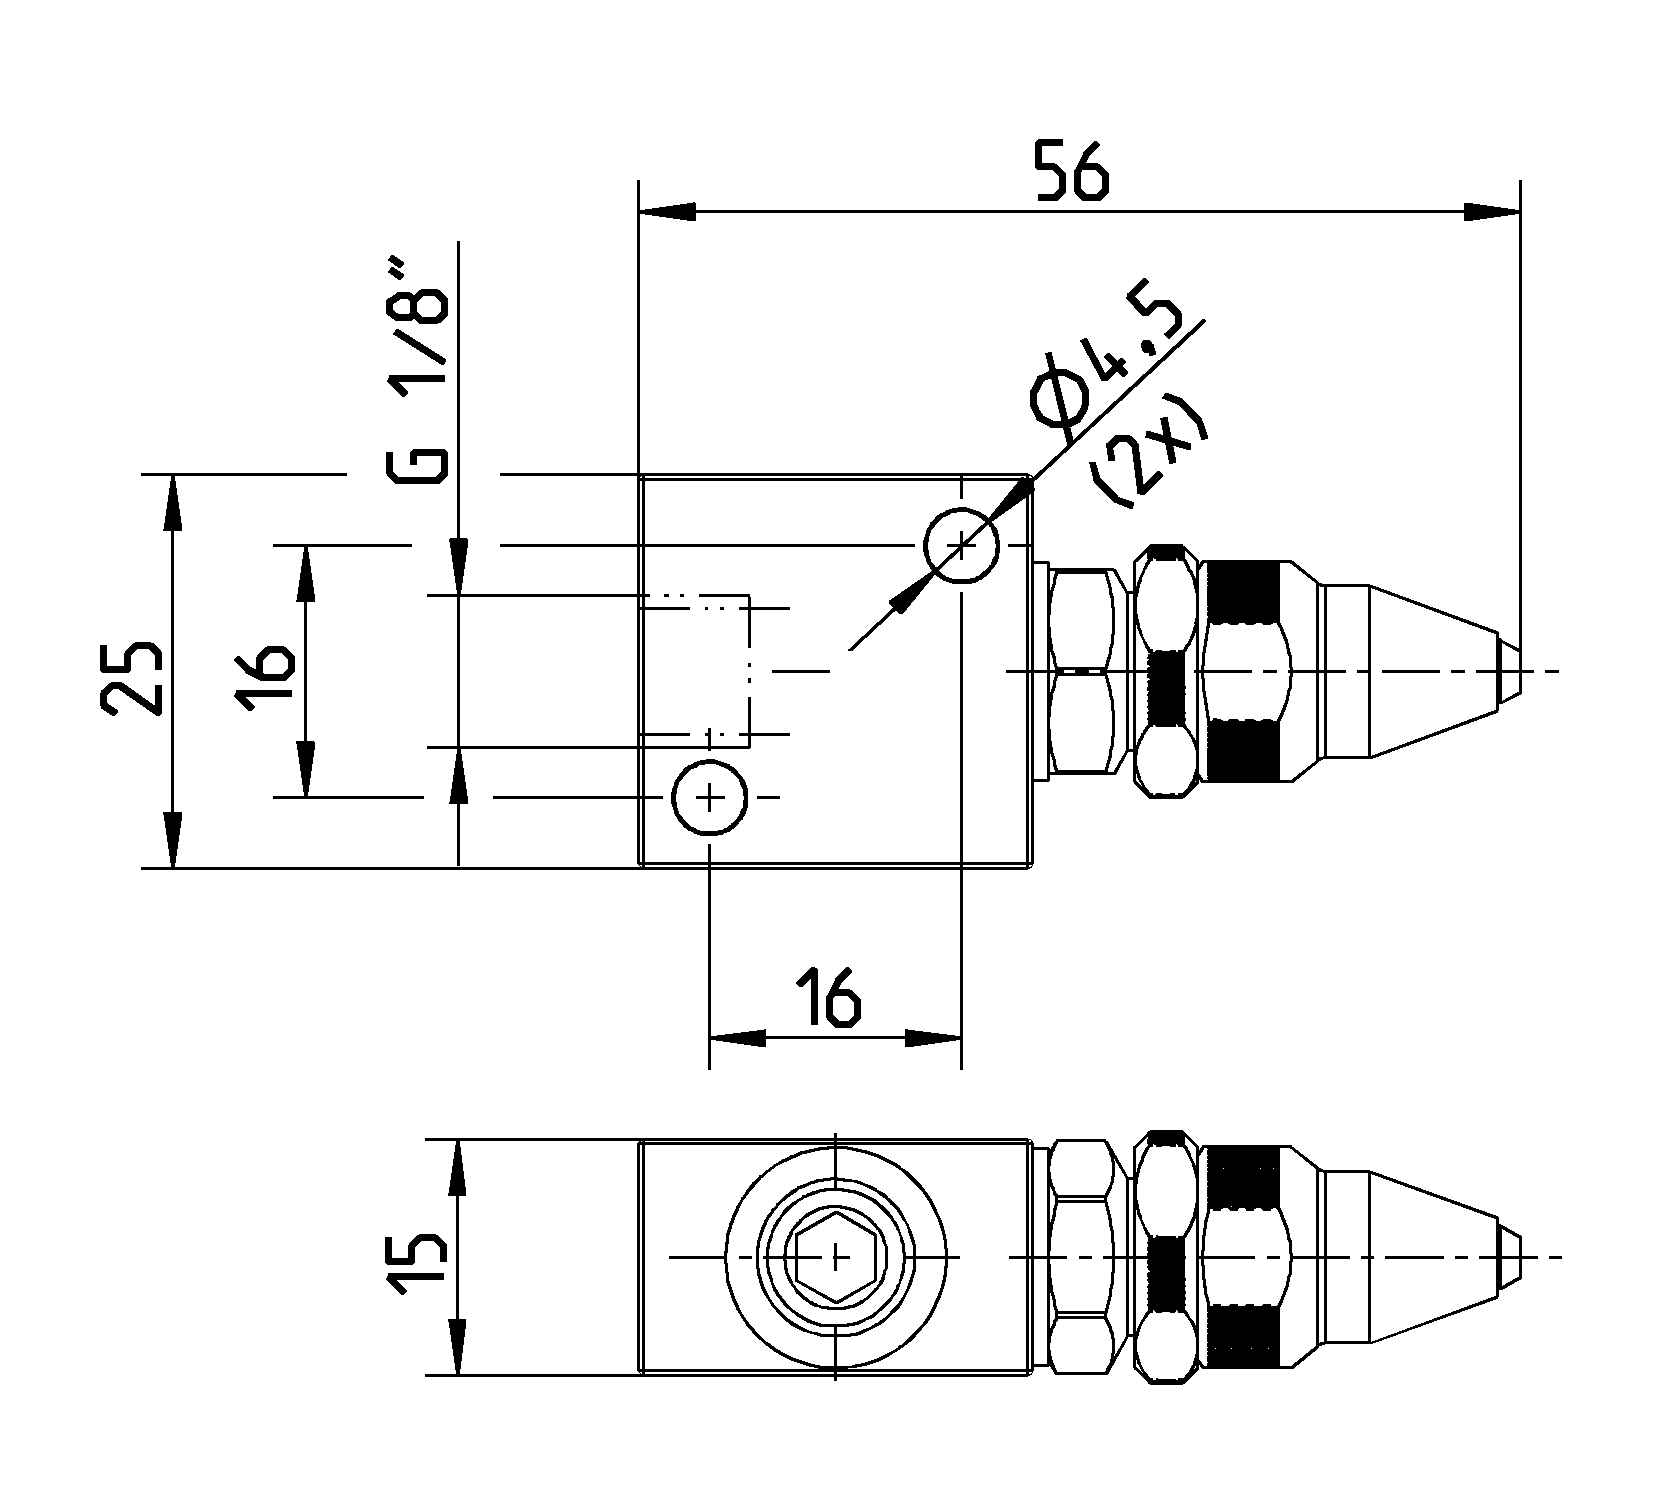 Dimesions of two-fluid jet-nozzle LMD 1/8